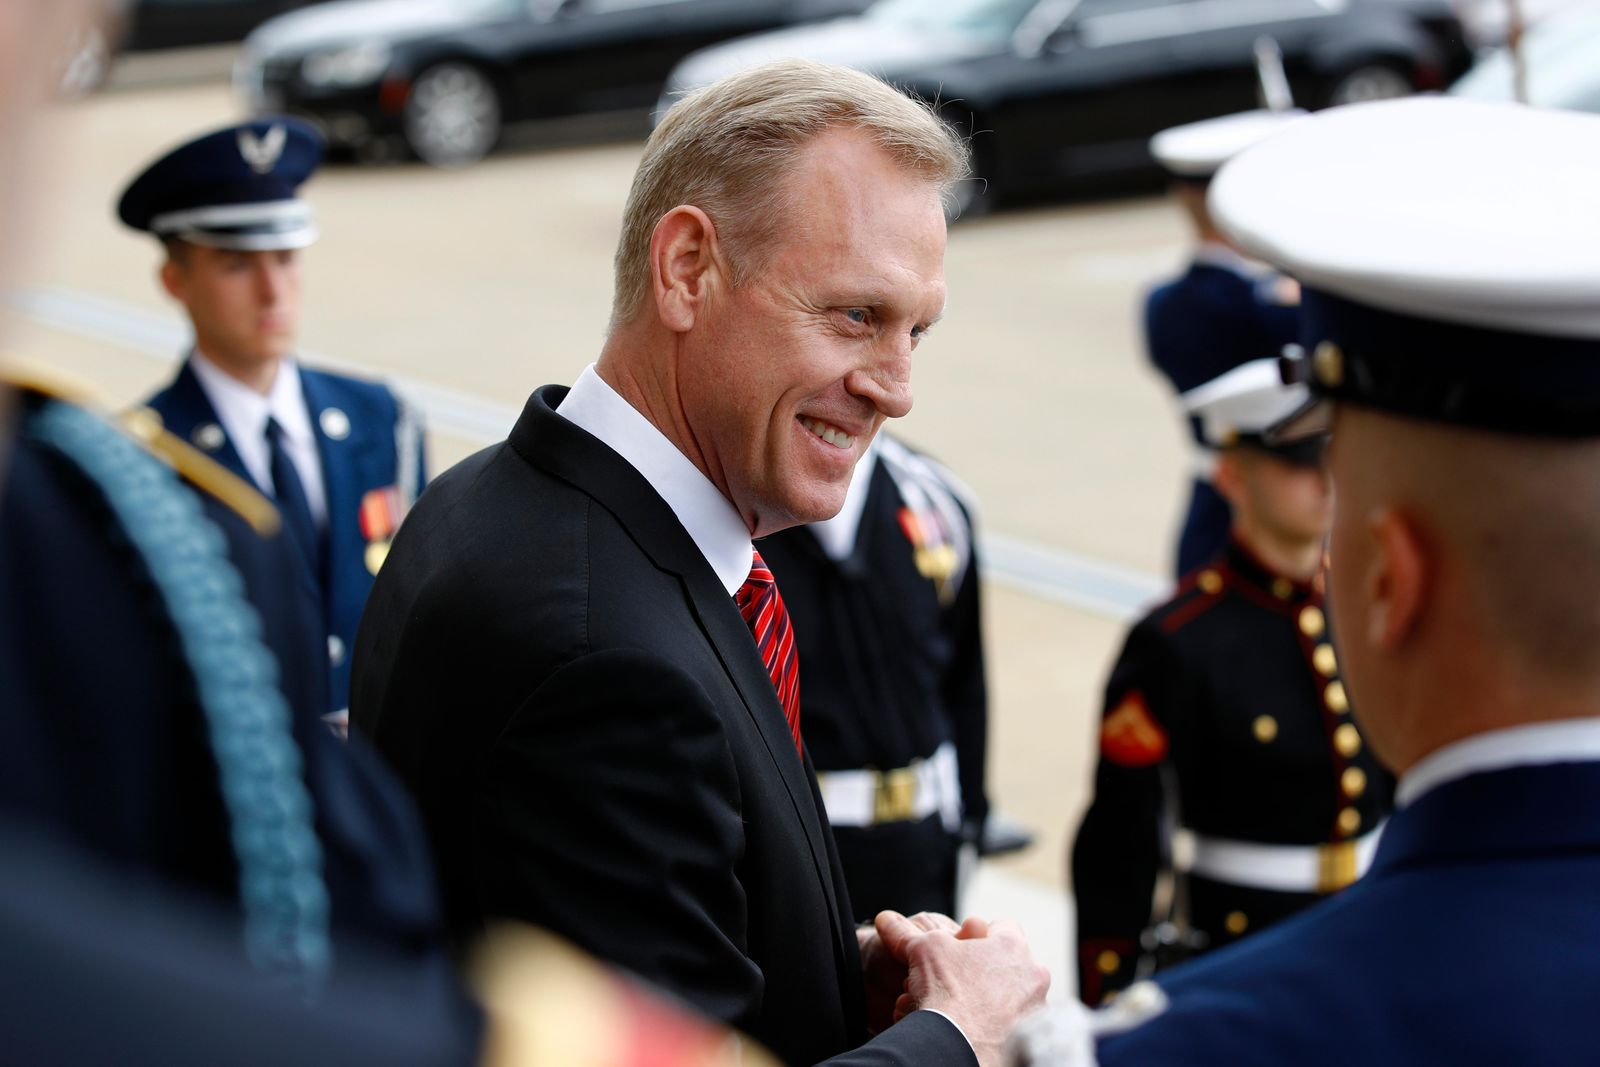 Acting Defense Secretary Patrick Shanahan speaks with reporters before an arrival ceremony for Japan's Defense Minister Takeshi Iwaya at the Pentagon, Friday, April 19, 2019, in Washington. (AP Photo/Patrick Semansky)